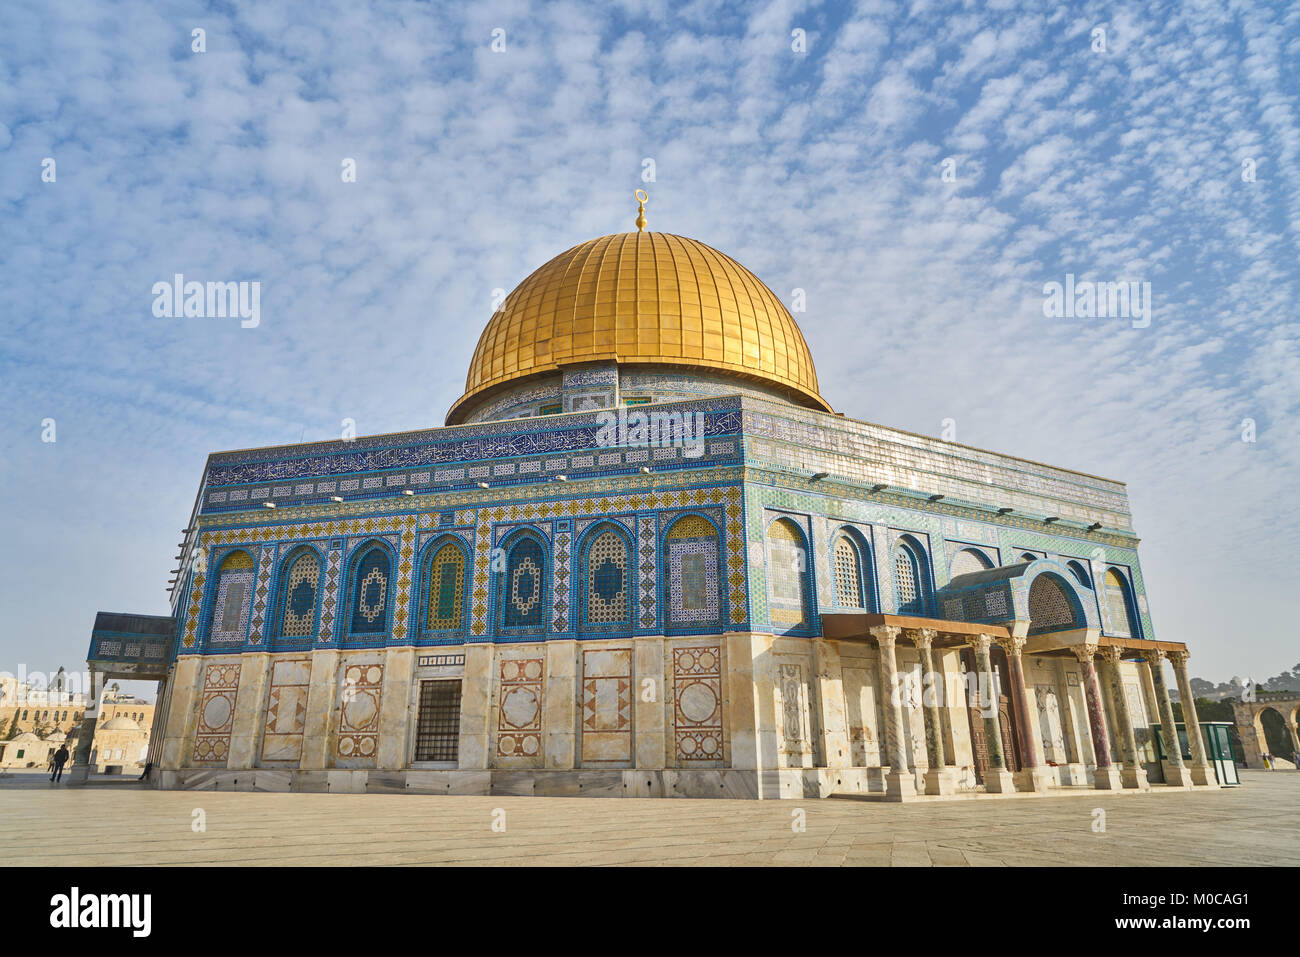 Panorama of Mosque of Al-aqsa (Dome of the Rock) on Temple Mount, Jerusalem, Israel - Stock Image